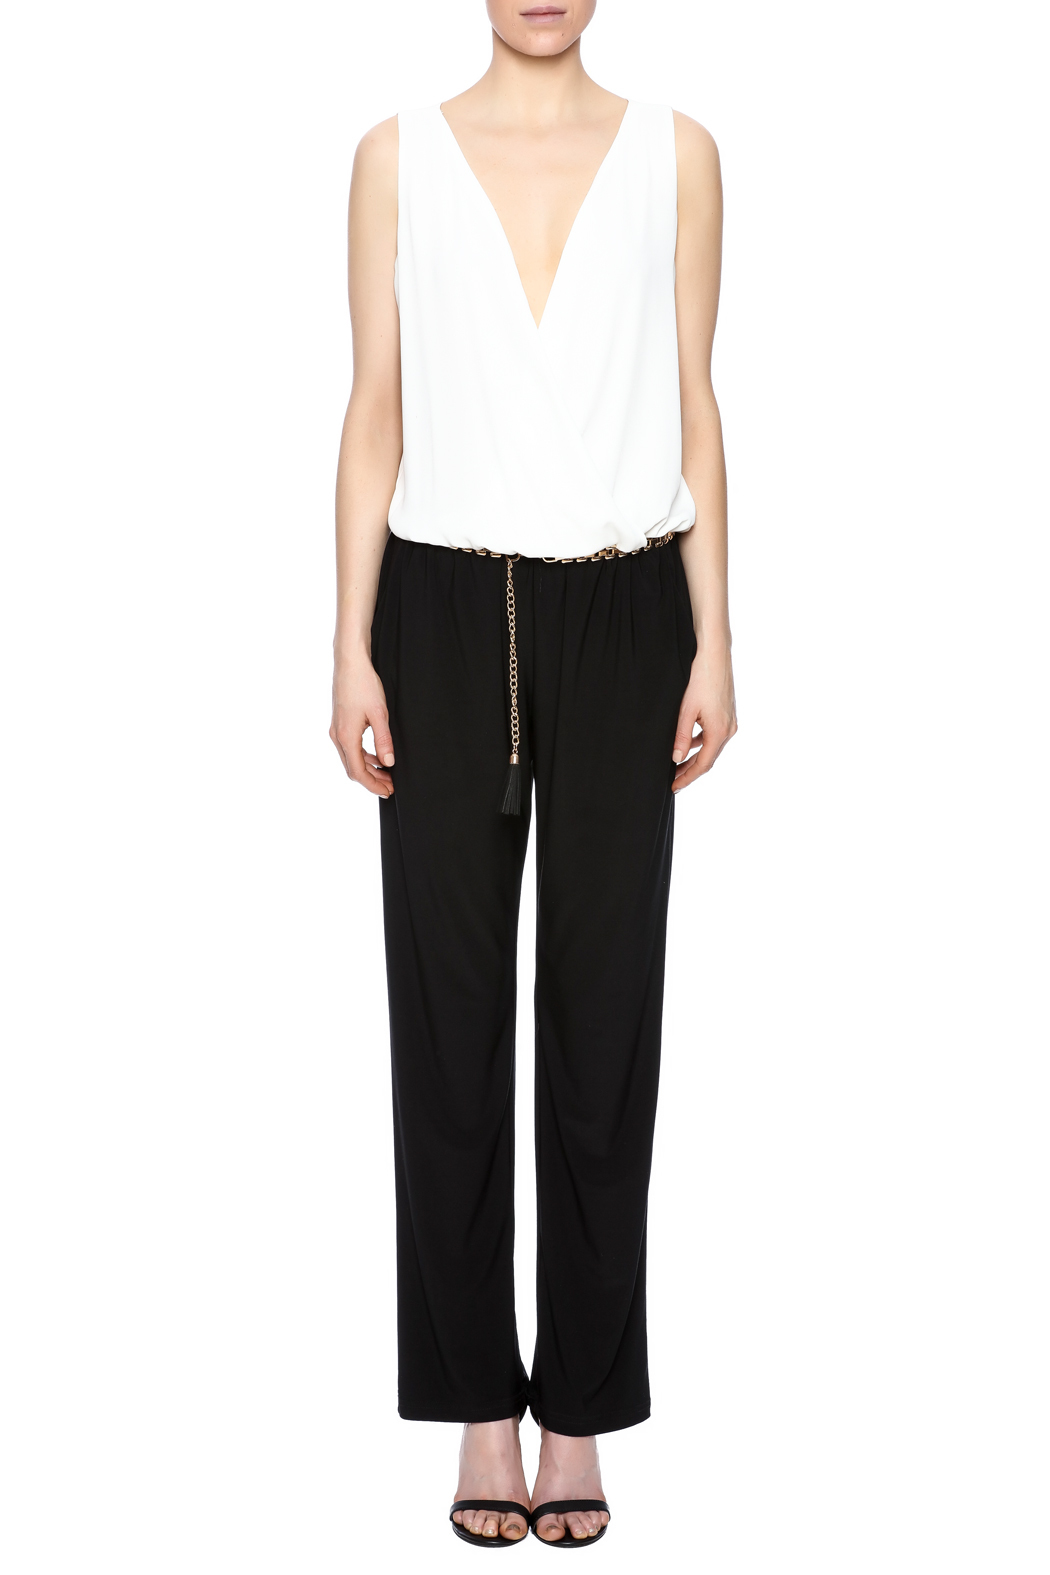 Joseph Ribkoff Belted Jumpsuit - Front Cropped Image